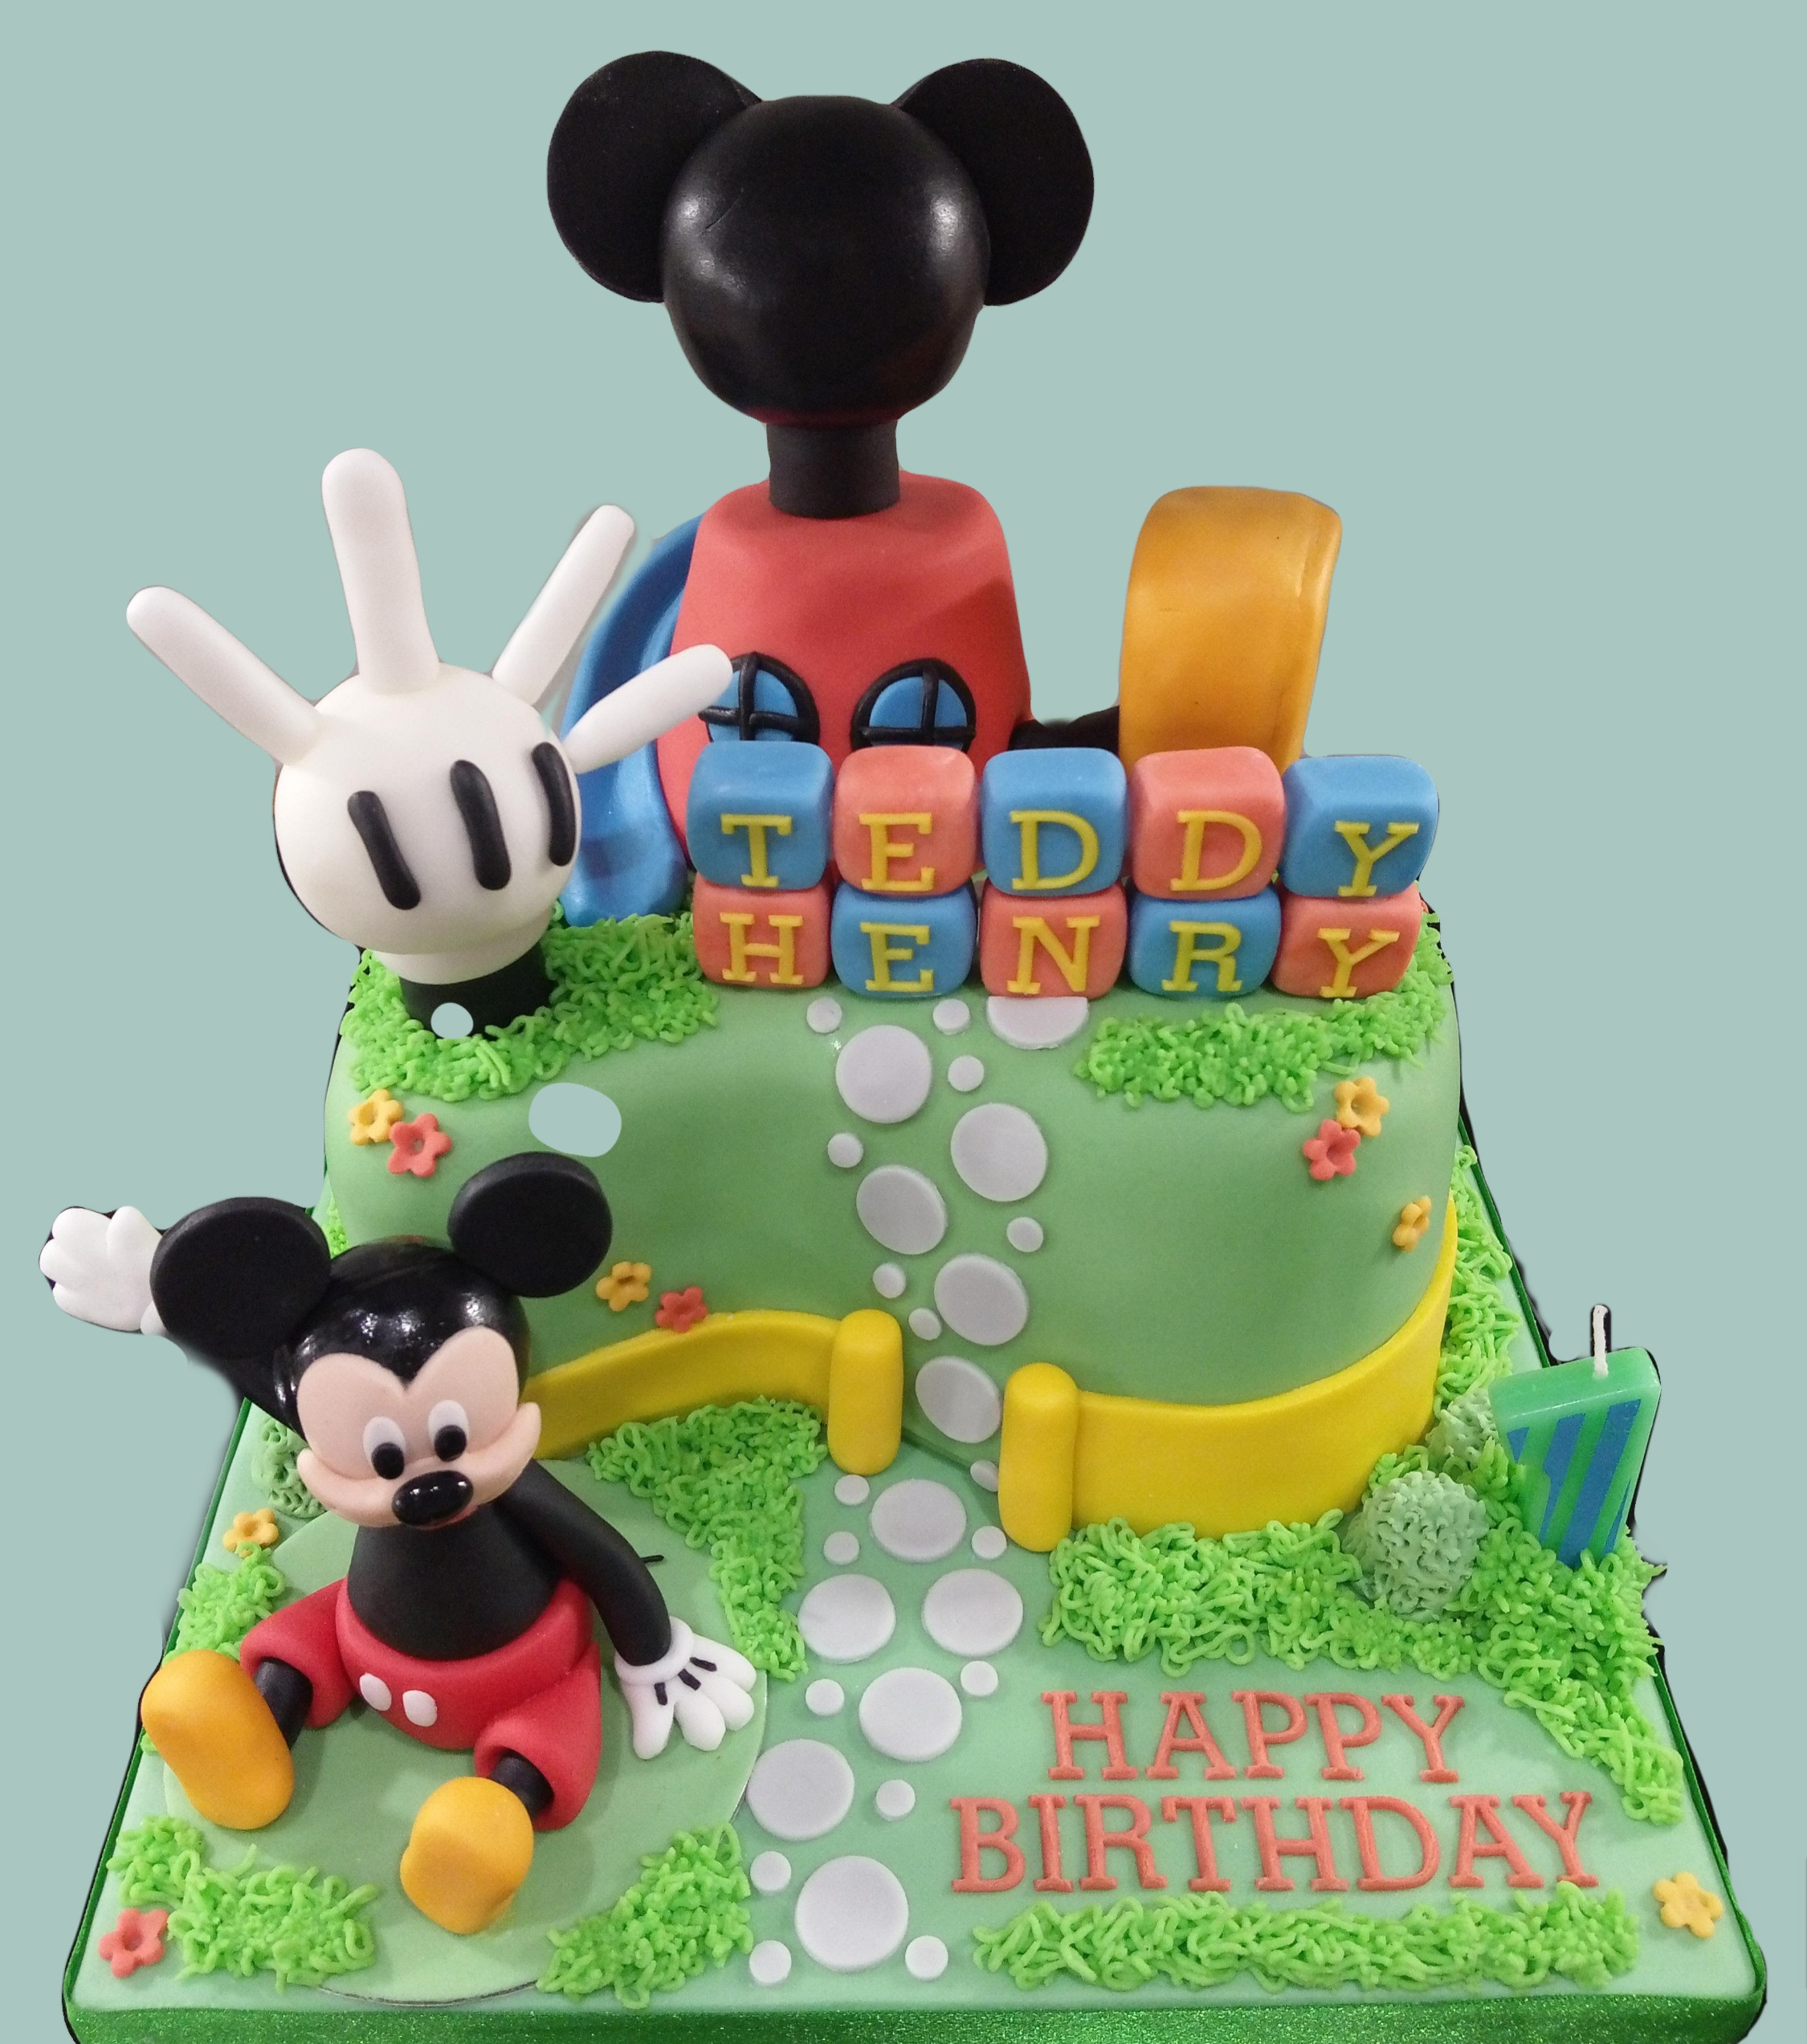 Mickey Mouse's Playhouse Cake